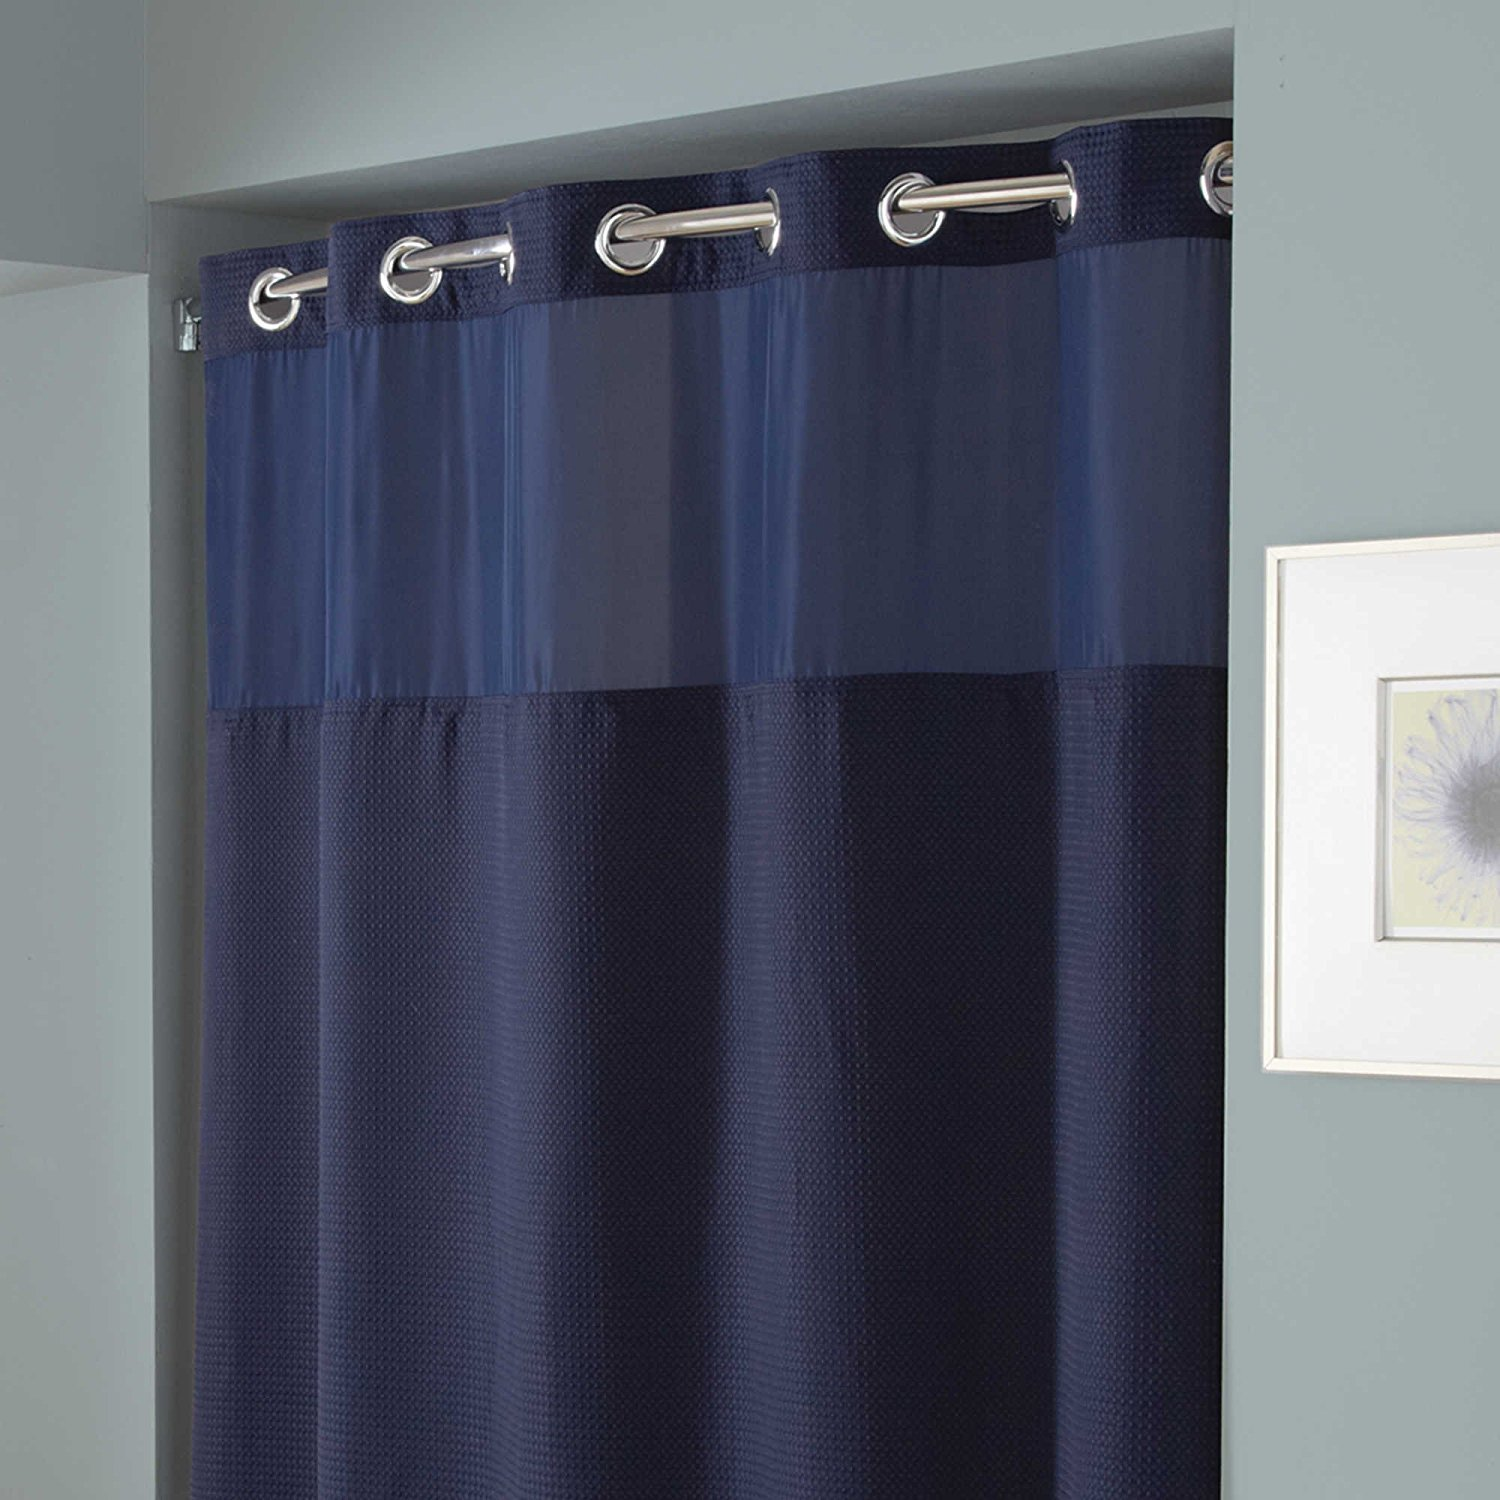 Hookless Hang in Seconds Waffle Fabric Shower Curtain (71 x 74, Navy)